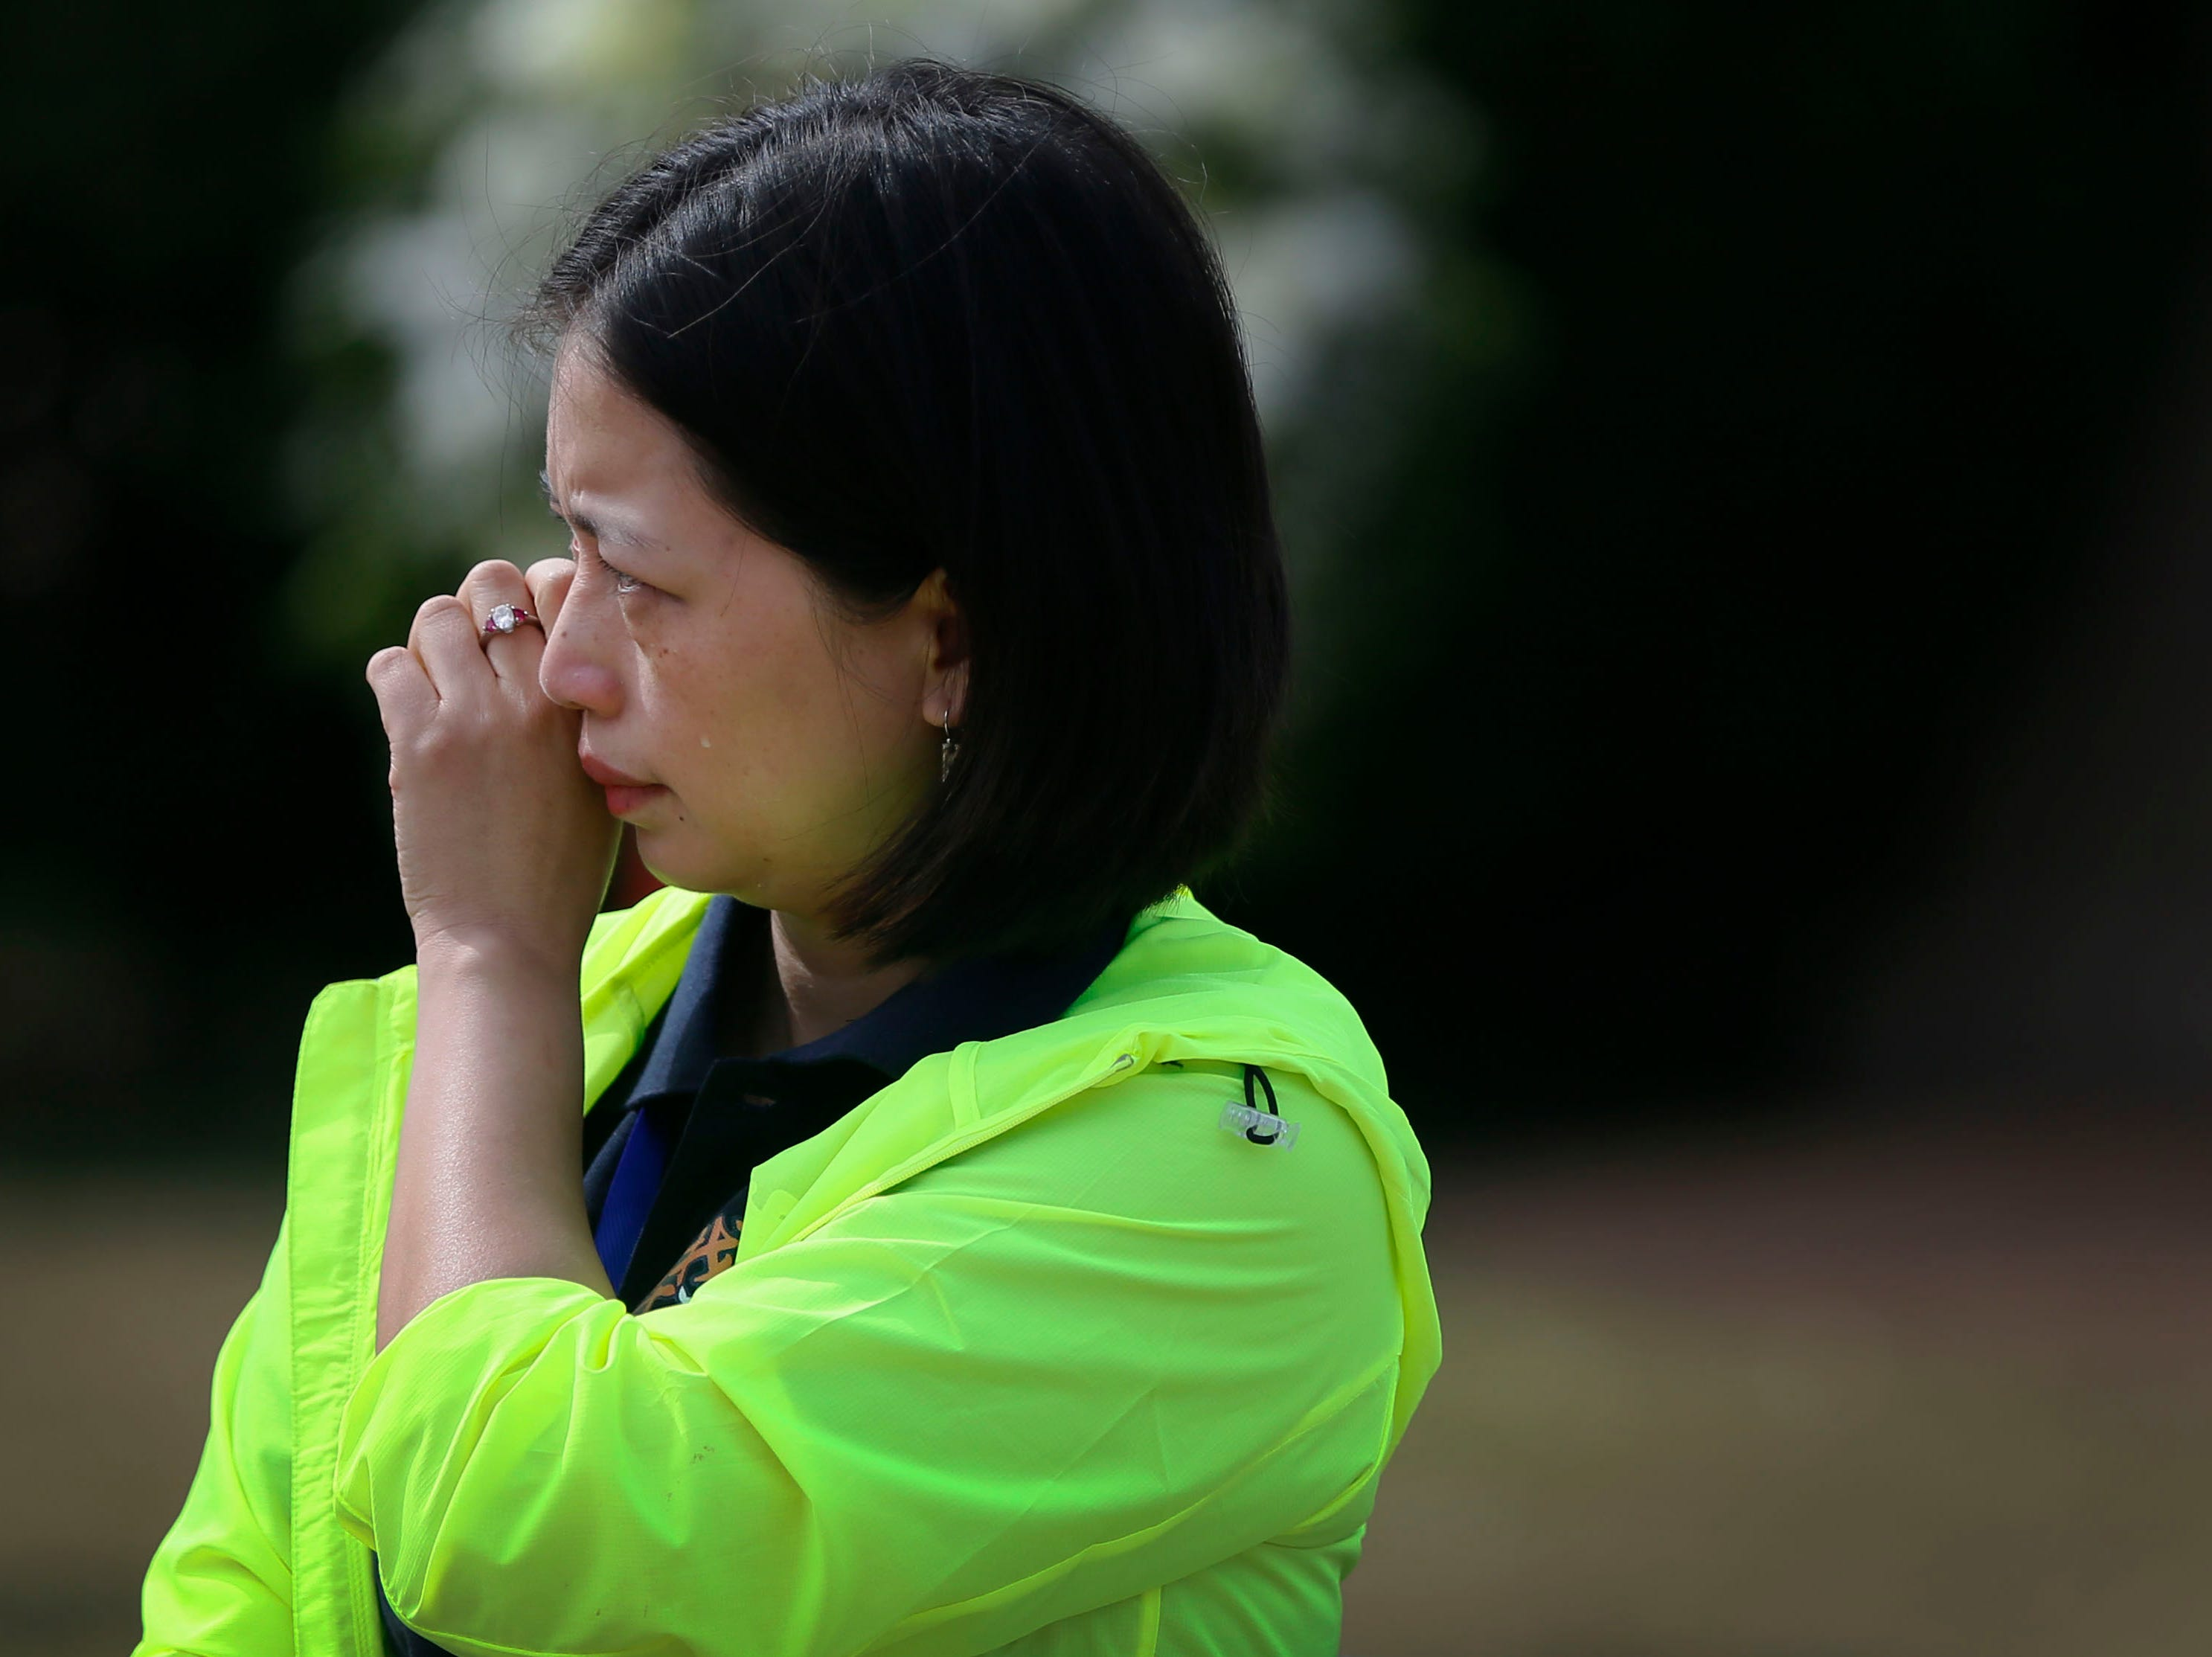 Longyue Charity Foundation member Qun Liu tears up during the ceremony at Fort Bliss National Cemetery Monday, May 13, in El Paso. The Hunan LongYue Peace Charity Development Center brought family members to El Paso to pay a special remembrance to their relatives who are amongst the 52 Chinese pilots who died in the U.S. during flight training in World War II.